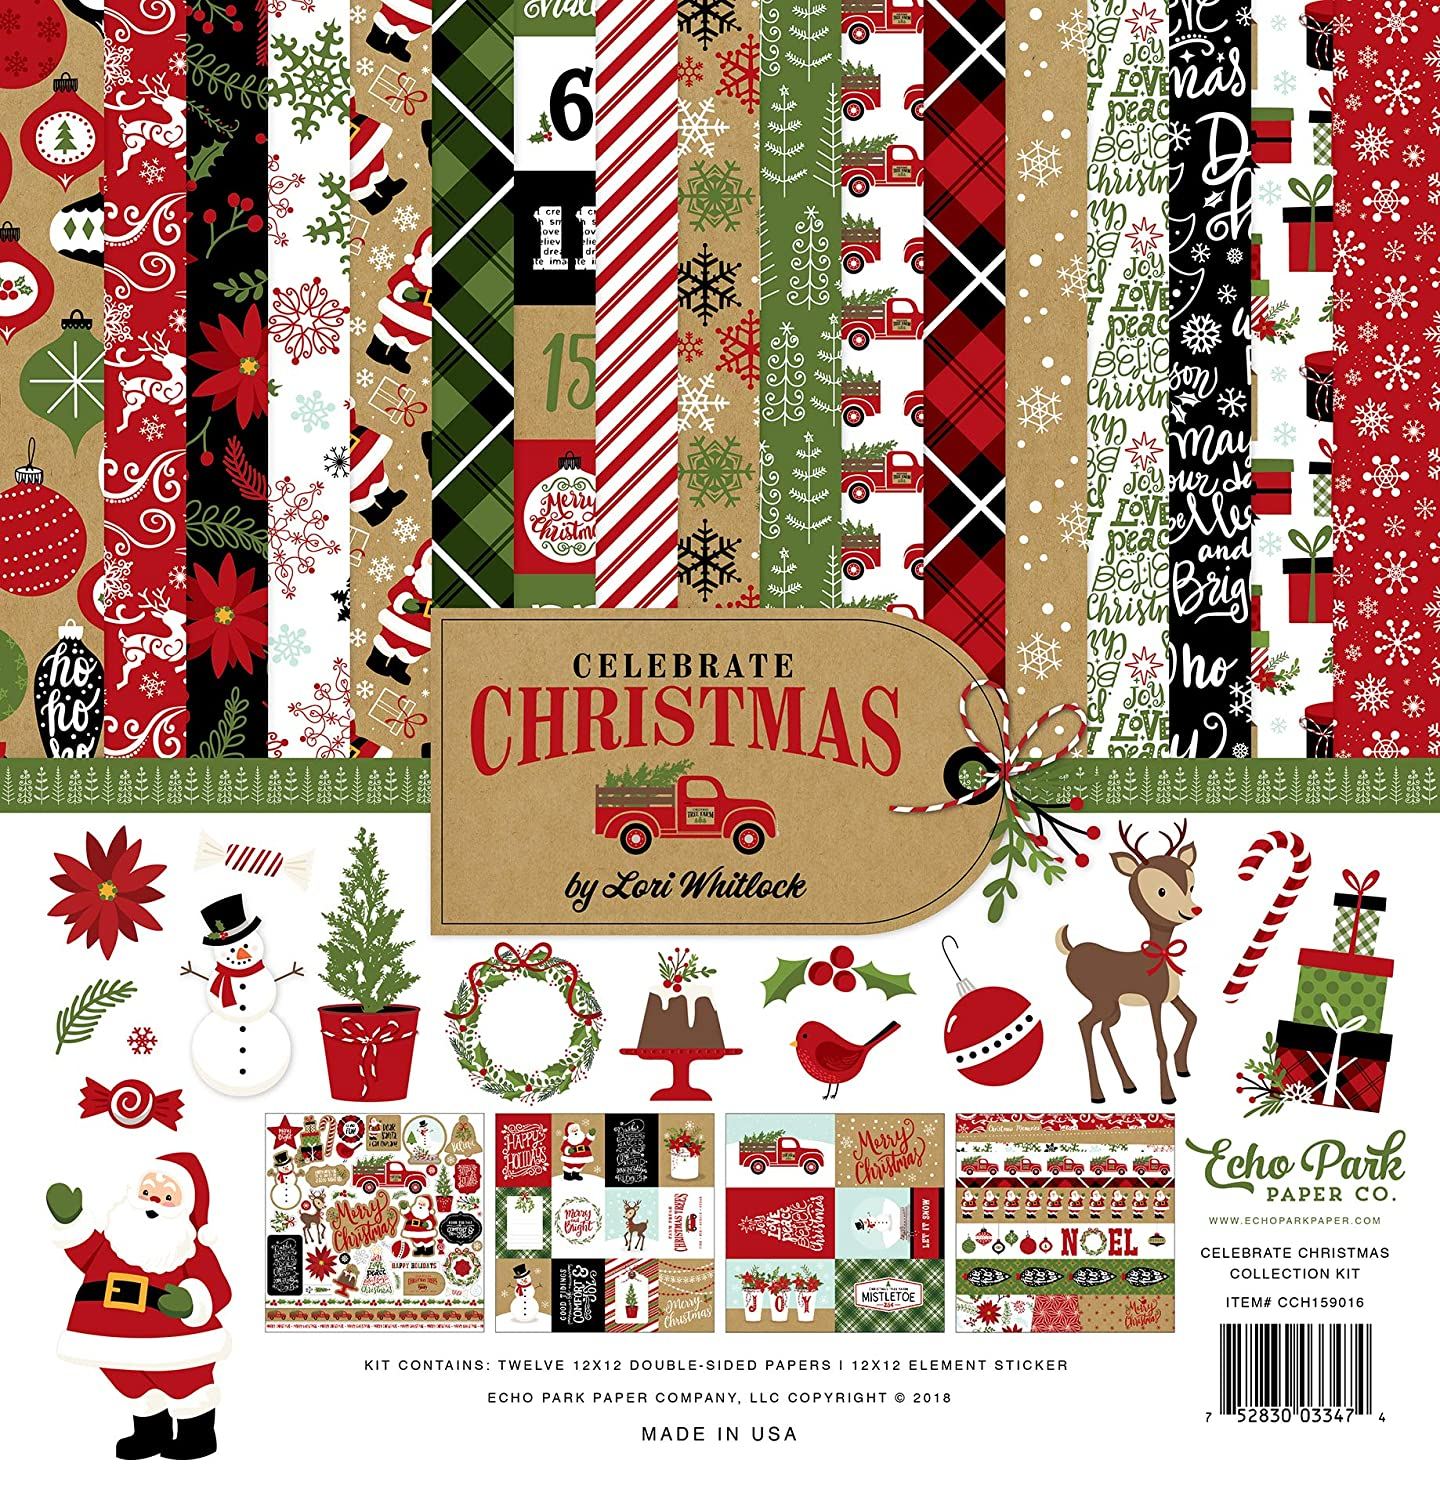 Echo Park Paper Company CCH159016 Celebrate Christmas Collection Kit Paper, Red, Green, Tan, Burlap, Black